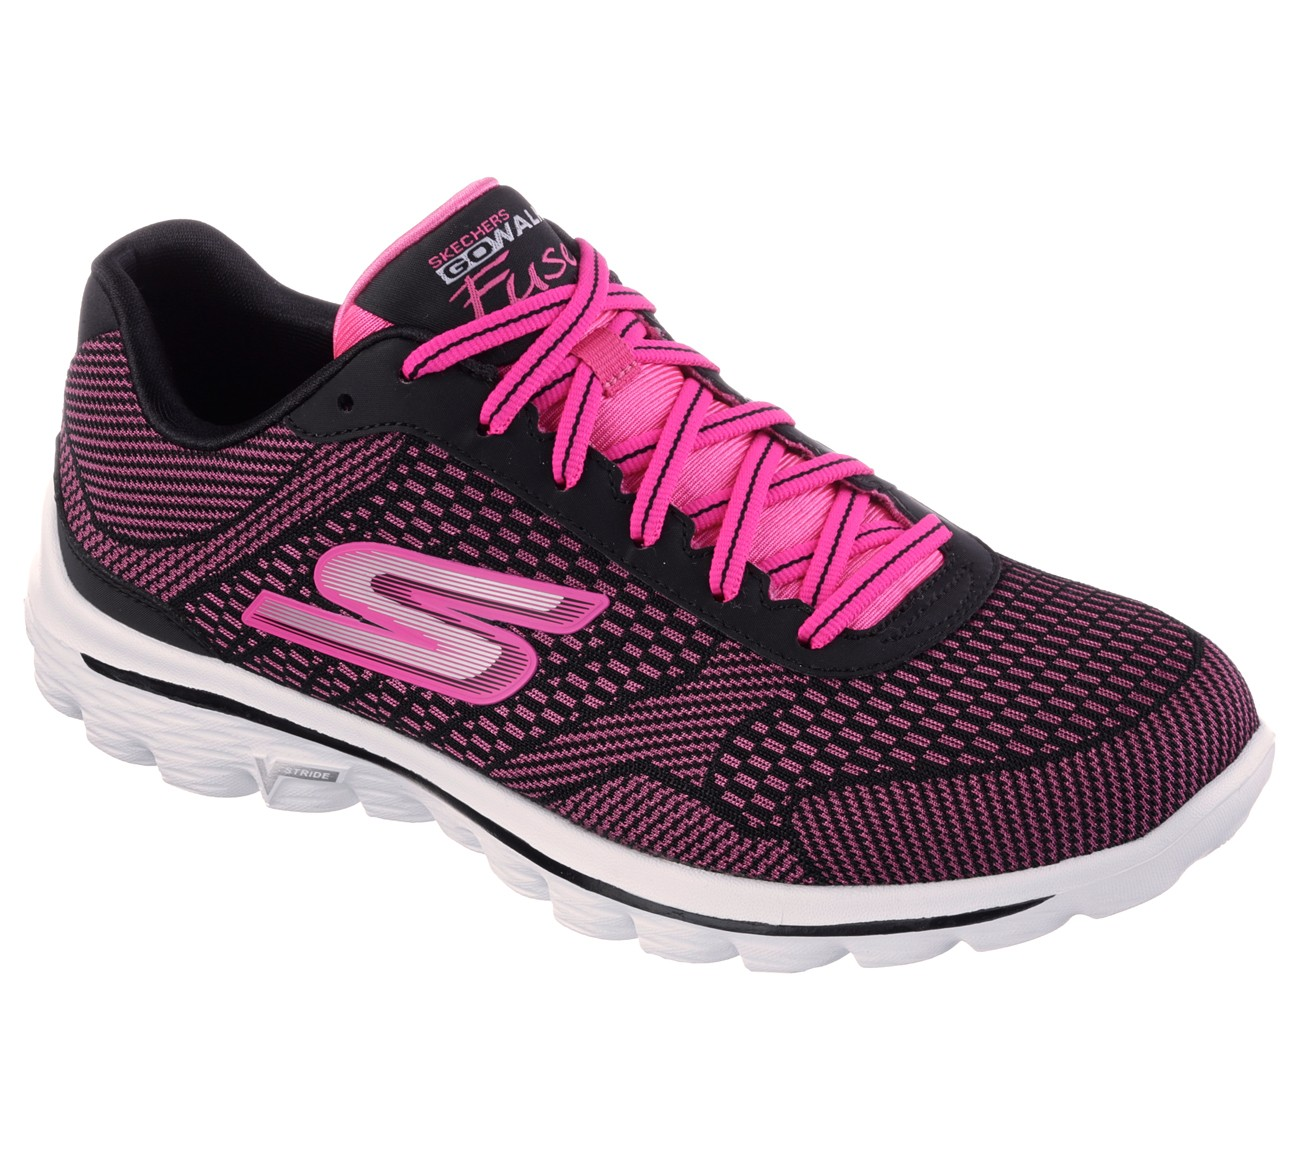 Skechers Arch Fit Womens Walking Shoes